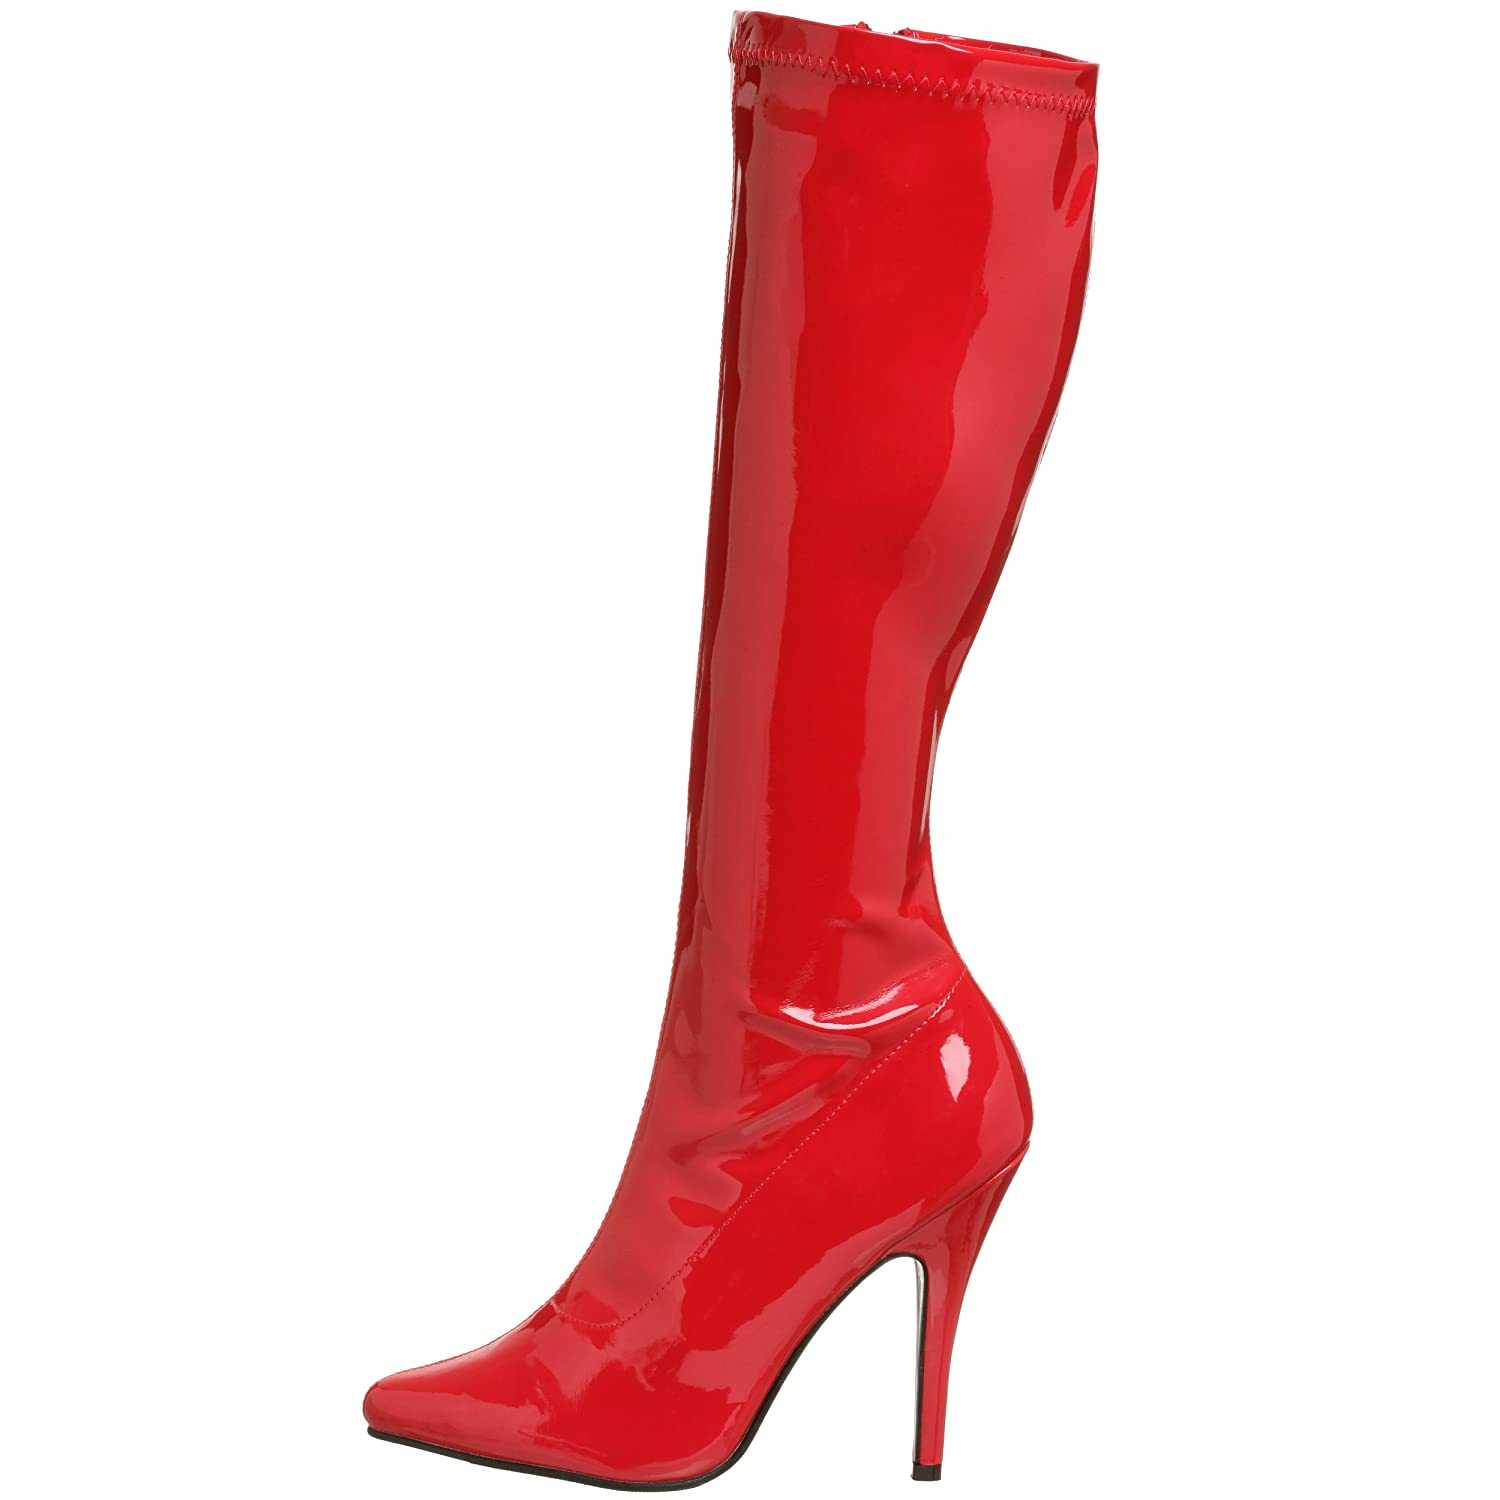 Pleaser Women's Seduce-2000 Knee-High Boot B00125TLF2 13 B(M) US|Red Stretch Patent